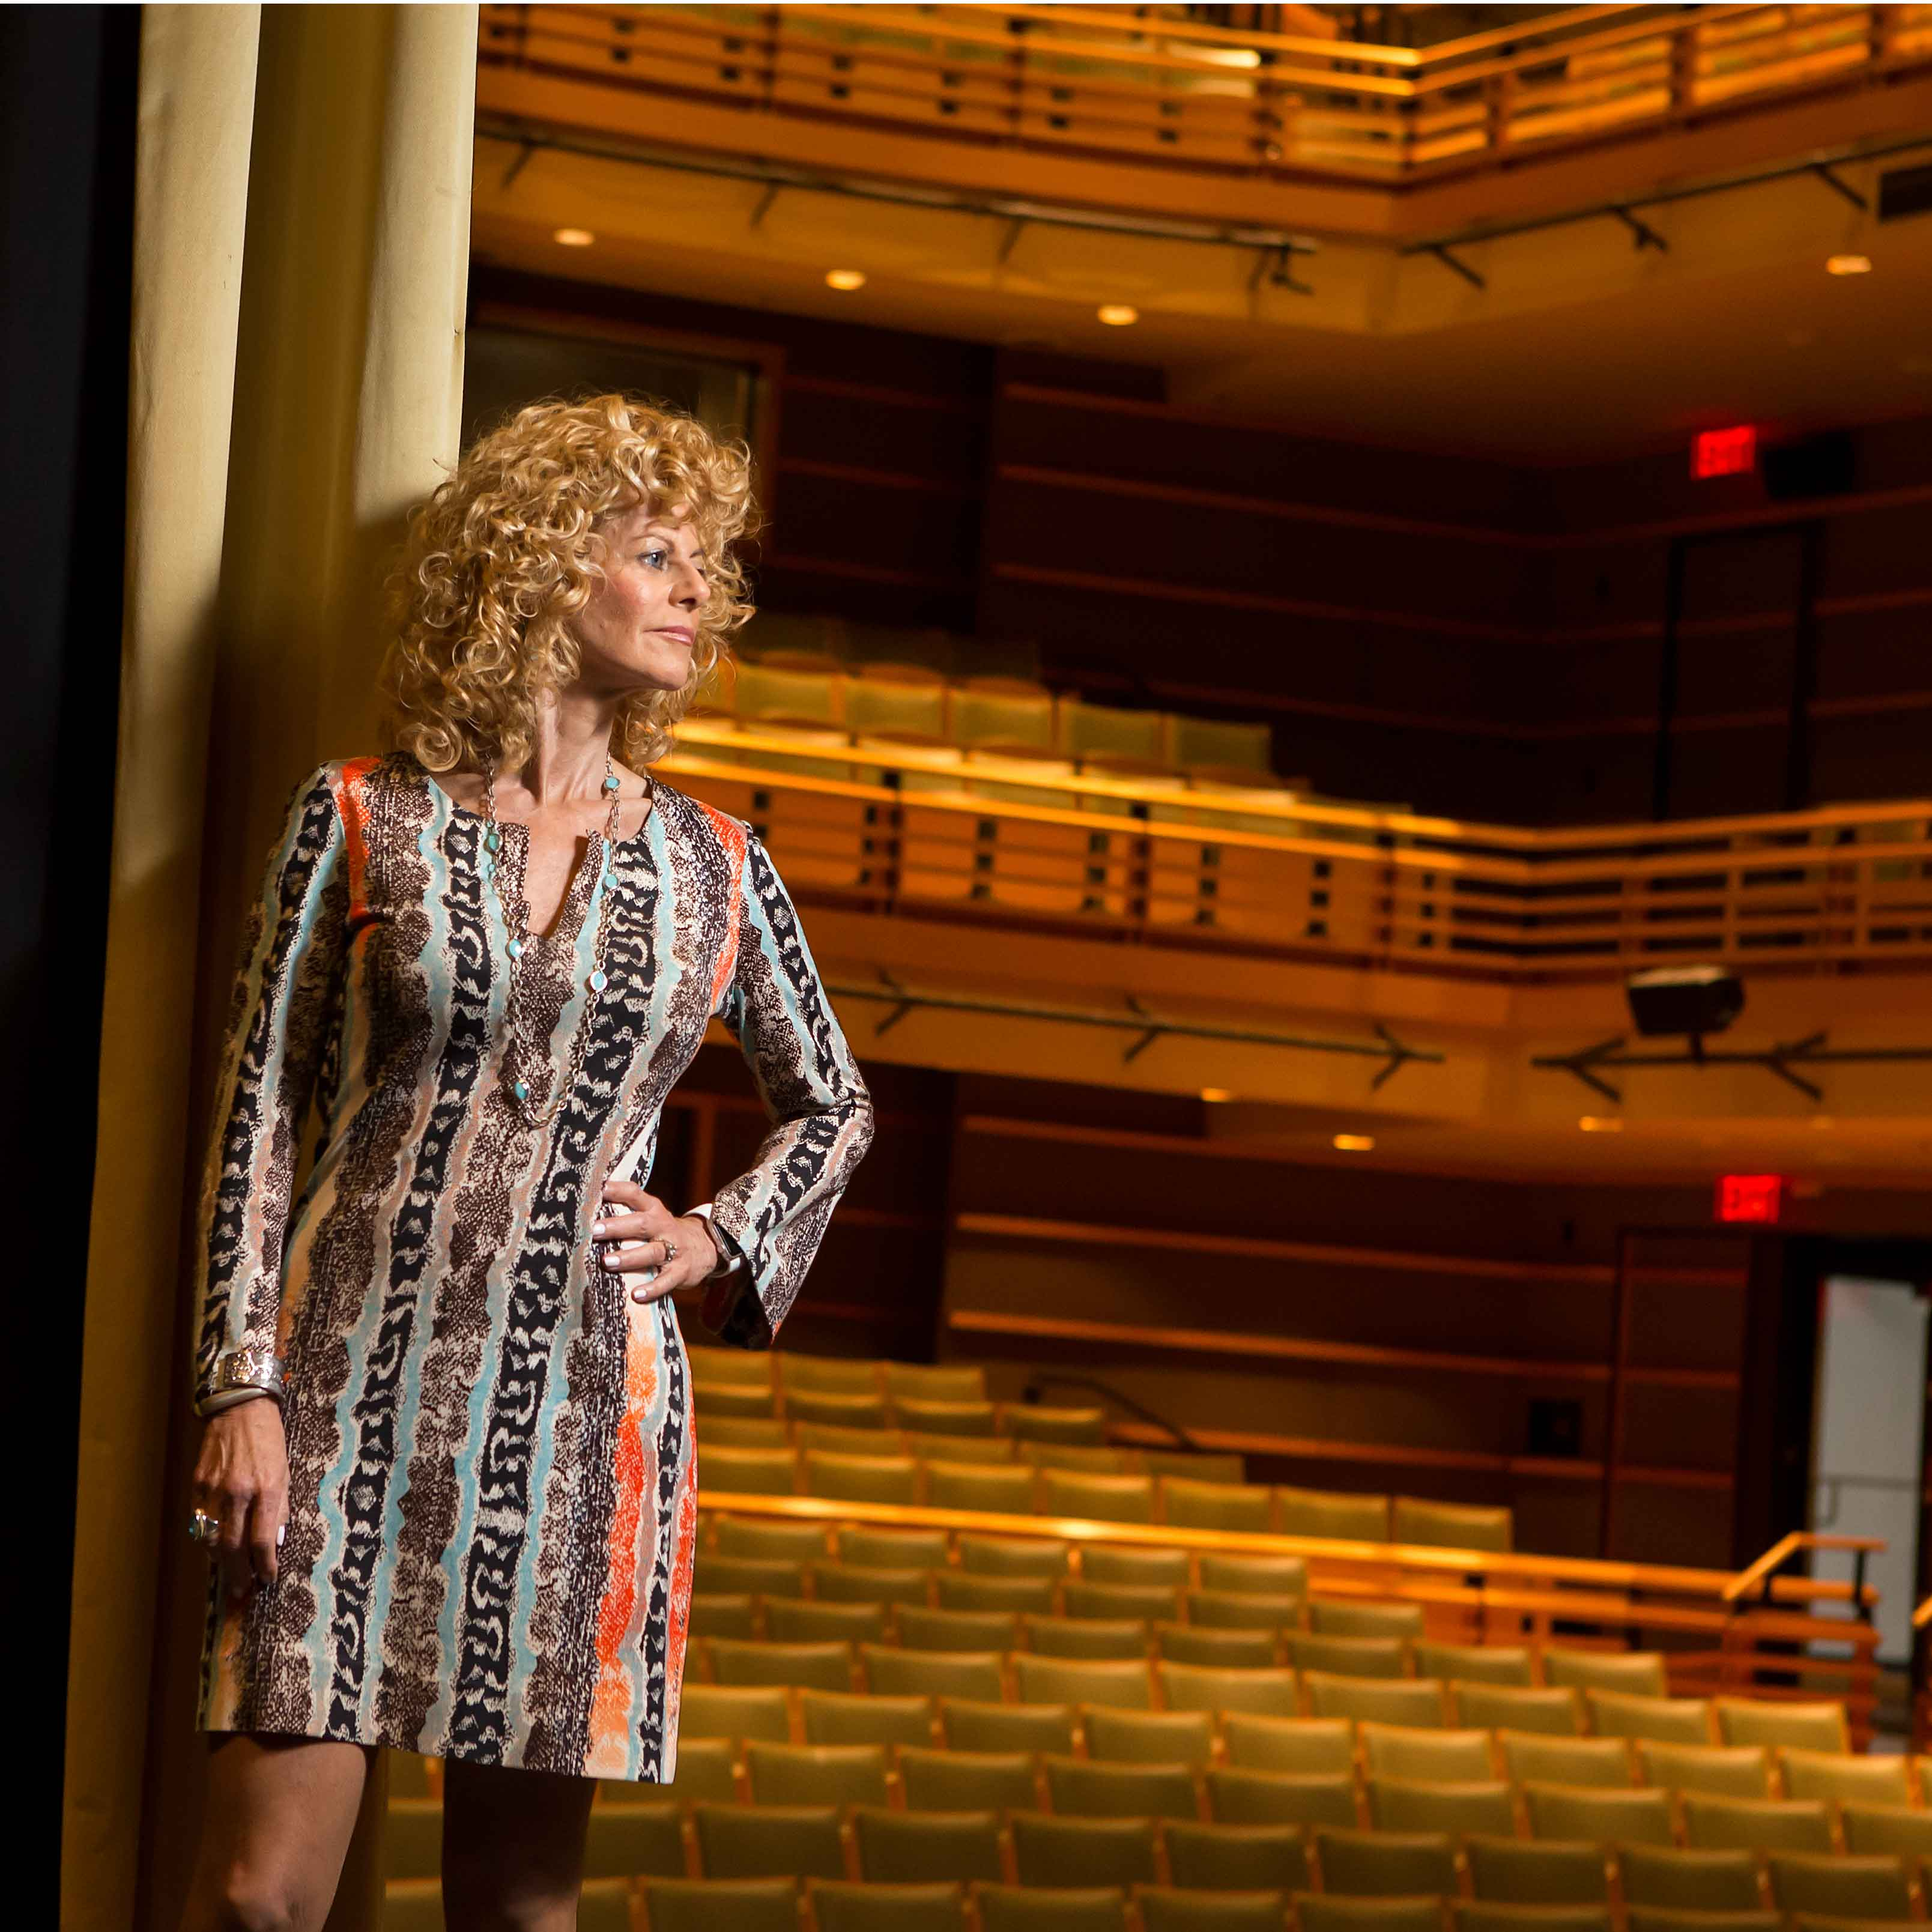 Sharon Pinkenson standing in an empty theater.